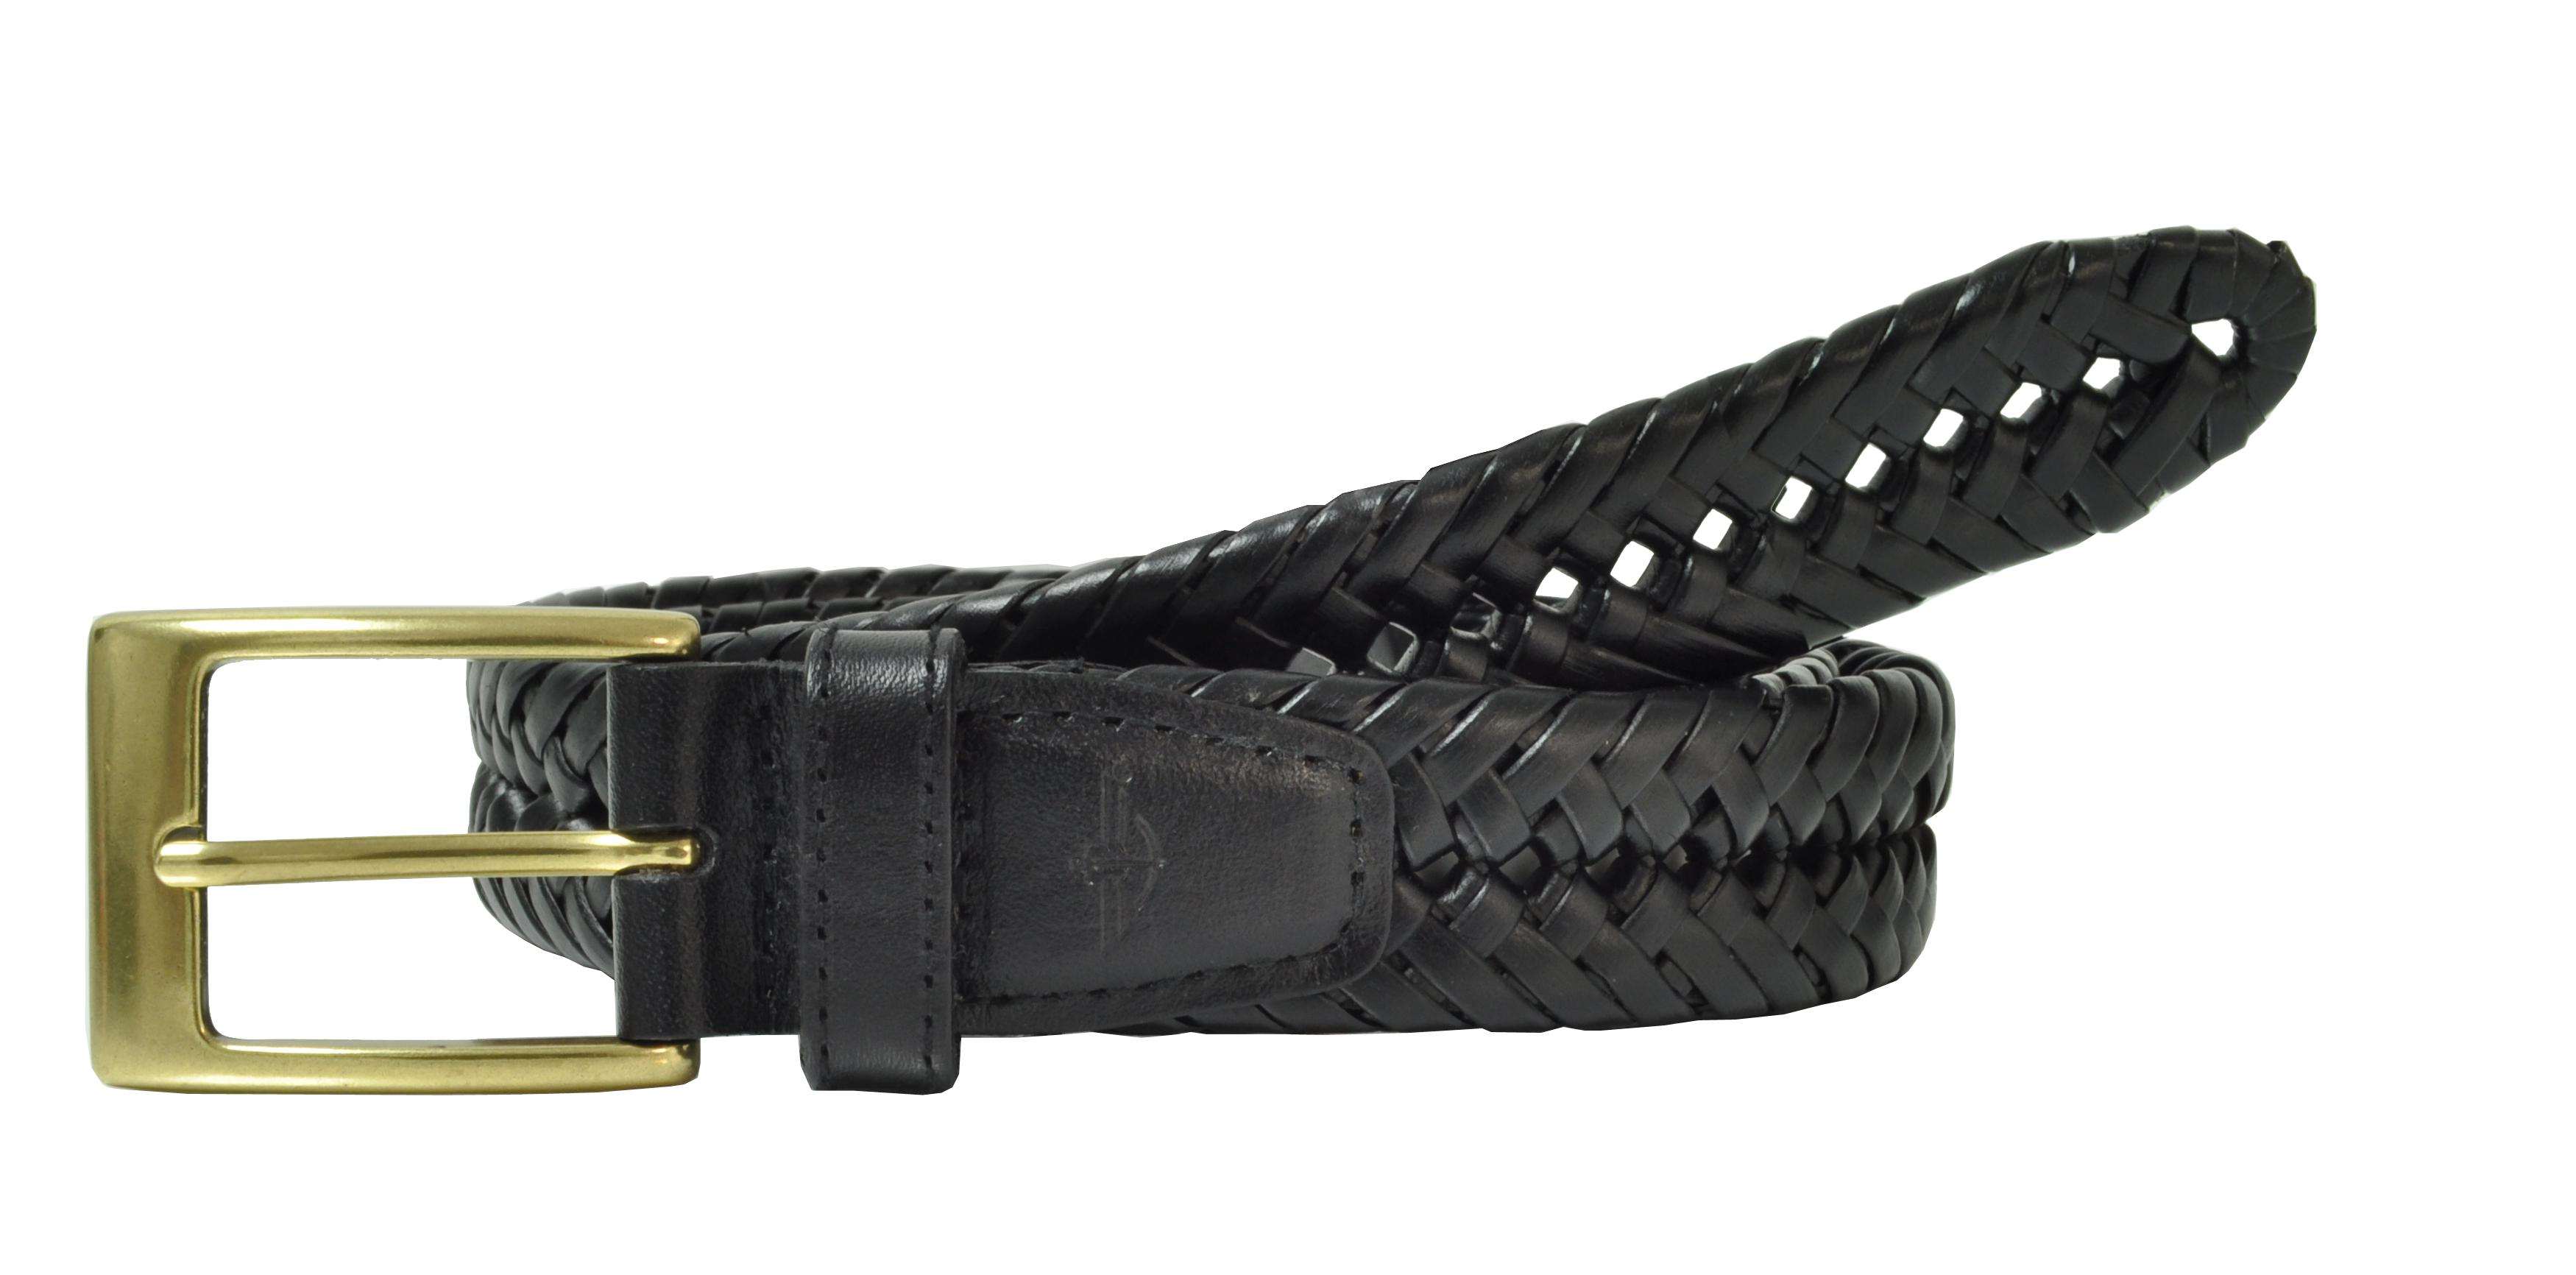 Dockers Mens Leather Fully Adjustable Double V-weave Braided Belt